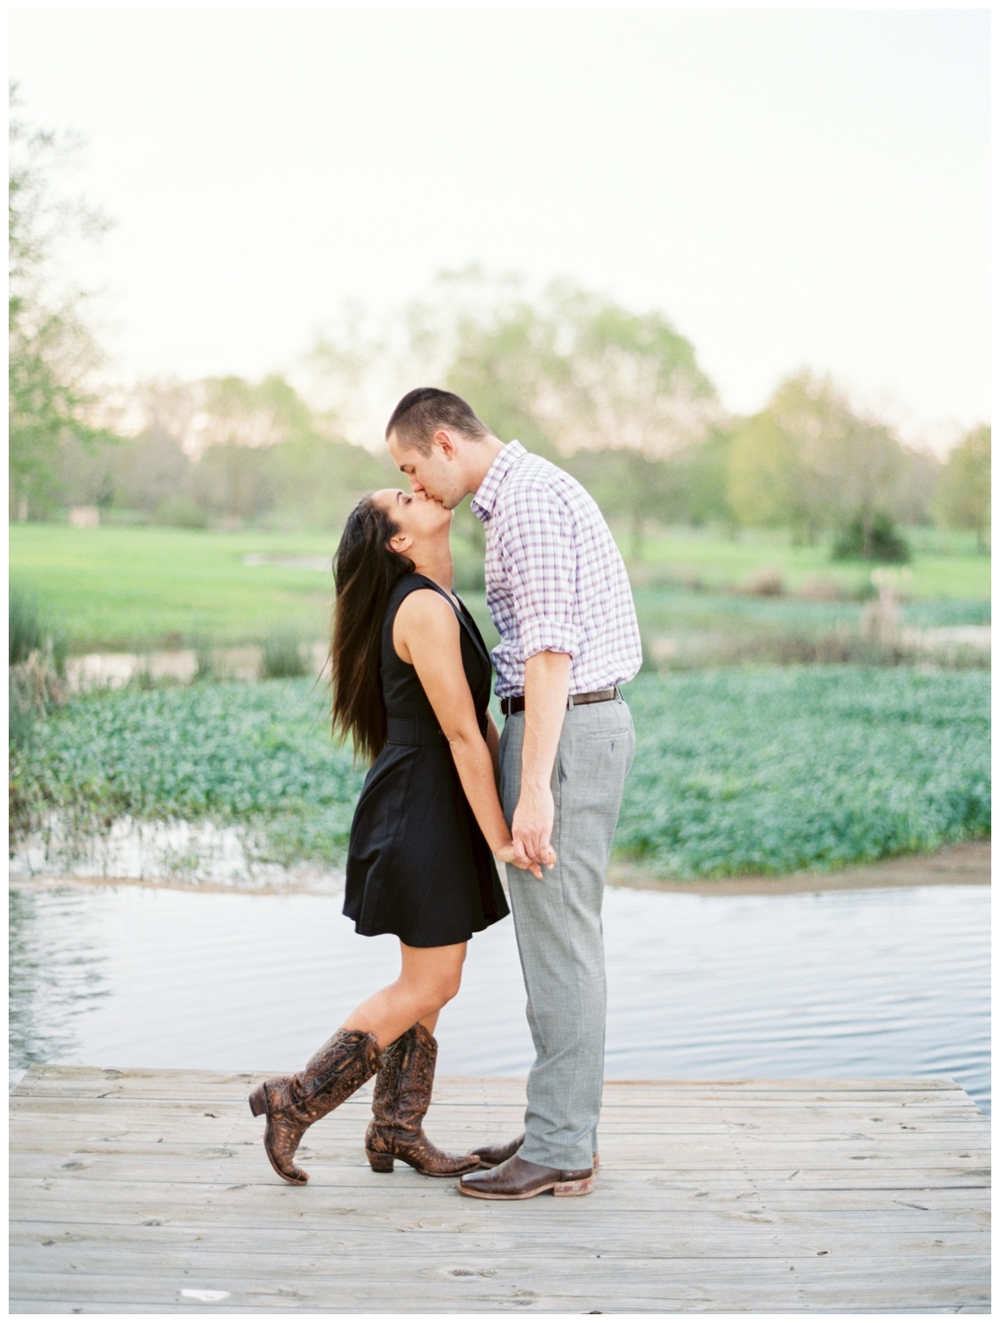 Nyssa & JD Engagements - Rock Lake Ranch - College Station Tx - Film-34_STP.jpg